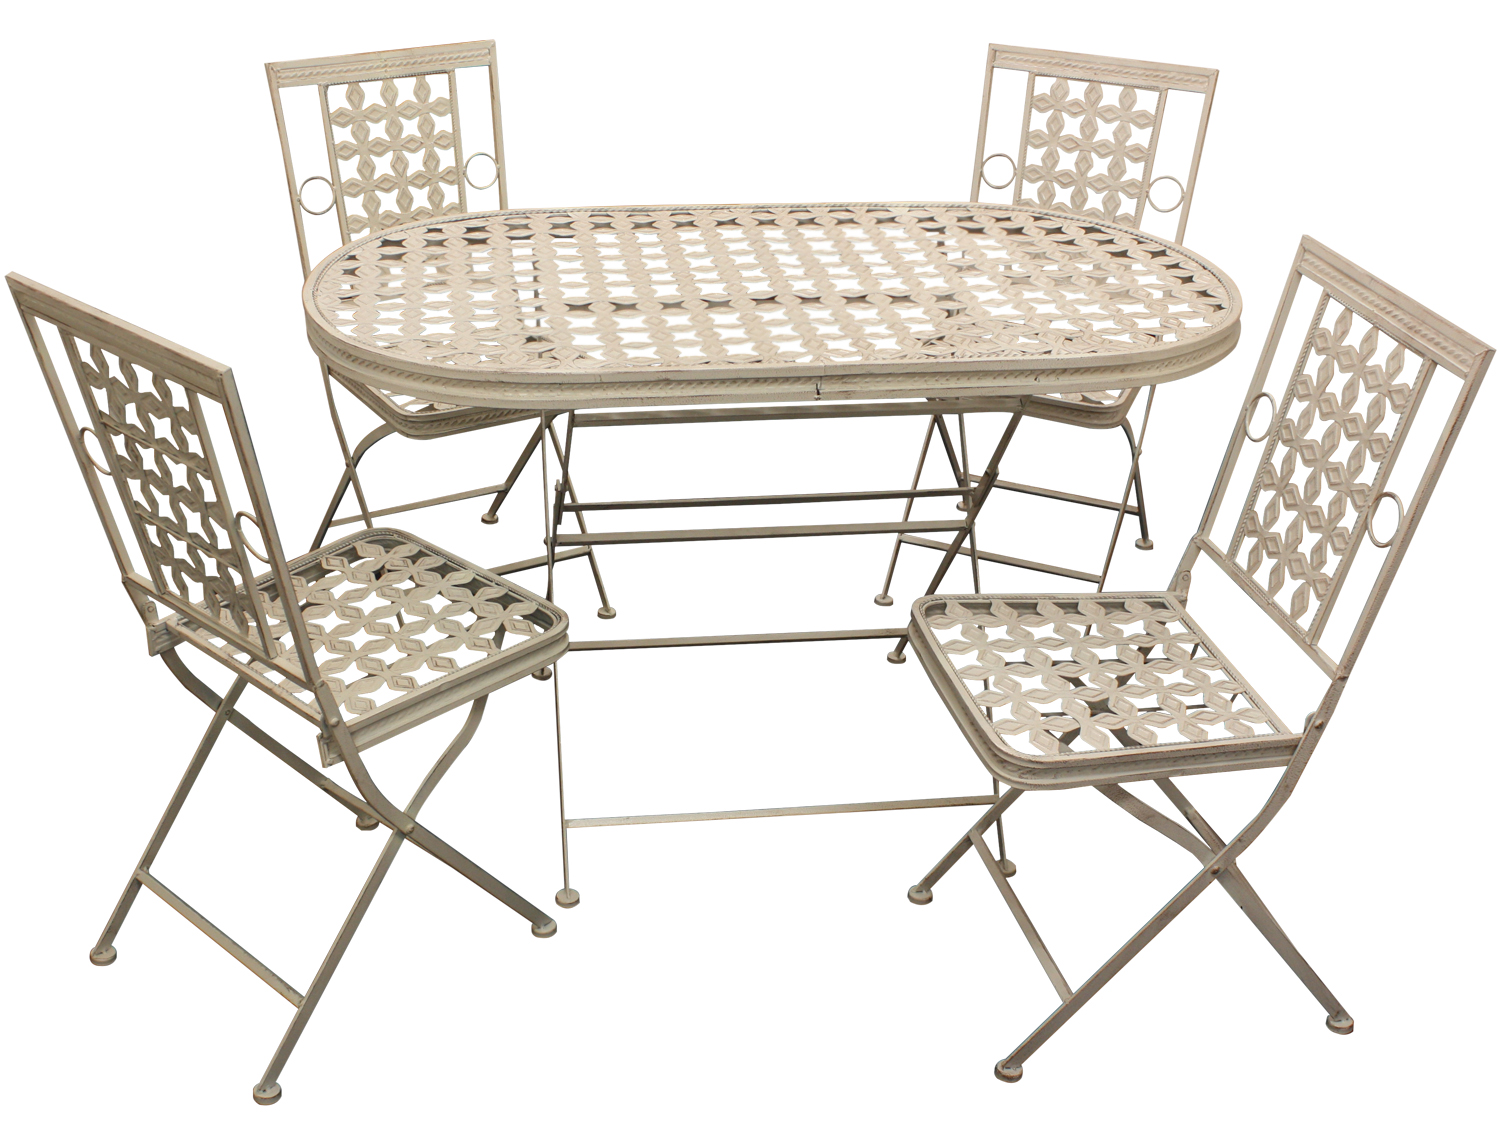 Maribelle folding metal outdoor garden patio dining table for Metal patio table and chairs set